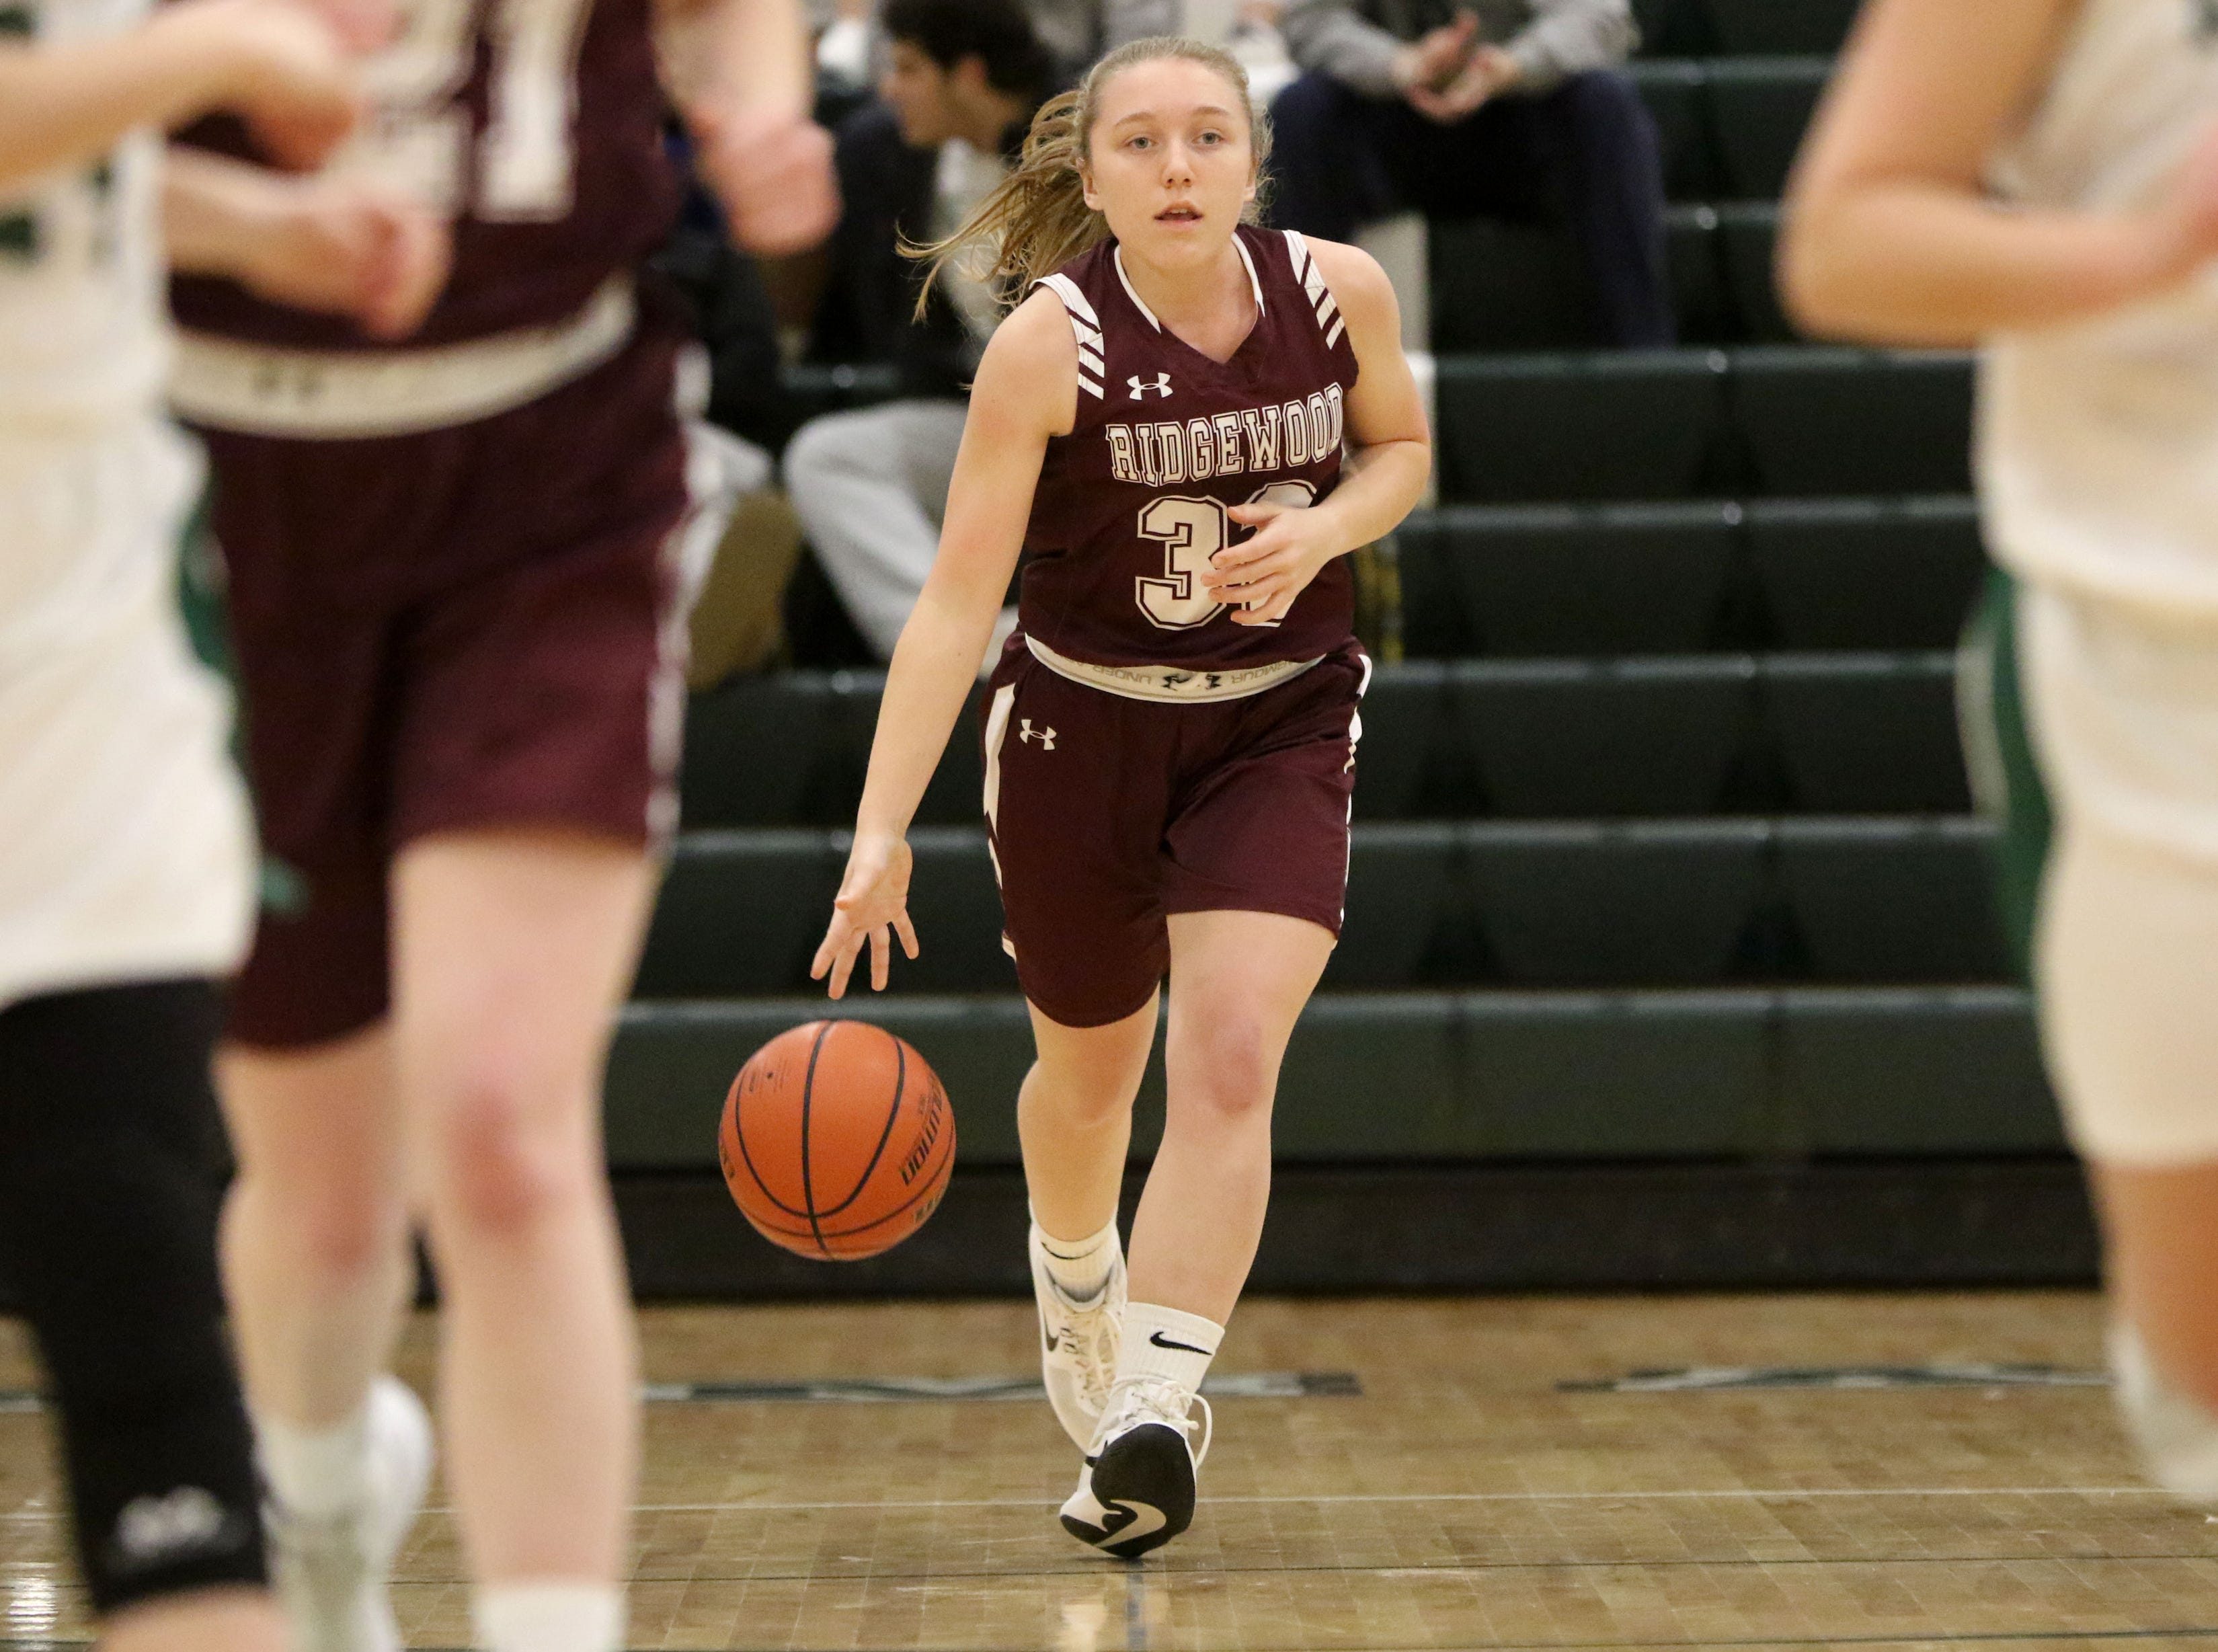 Allie Olsen, of Ridgewood, brings the ball across the court. Thursday, January 10, 2019